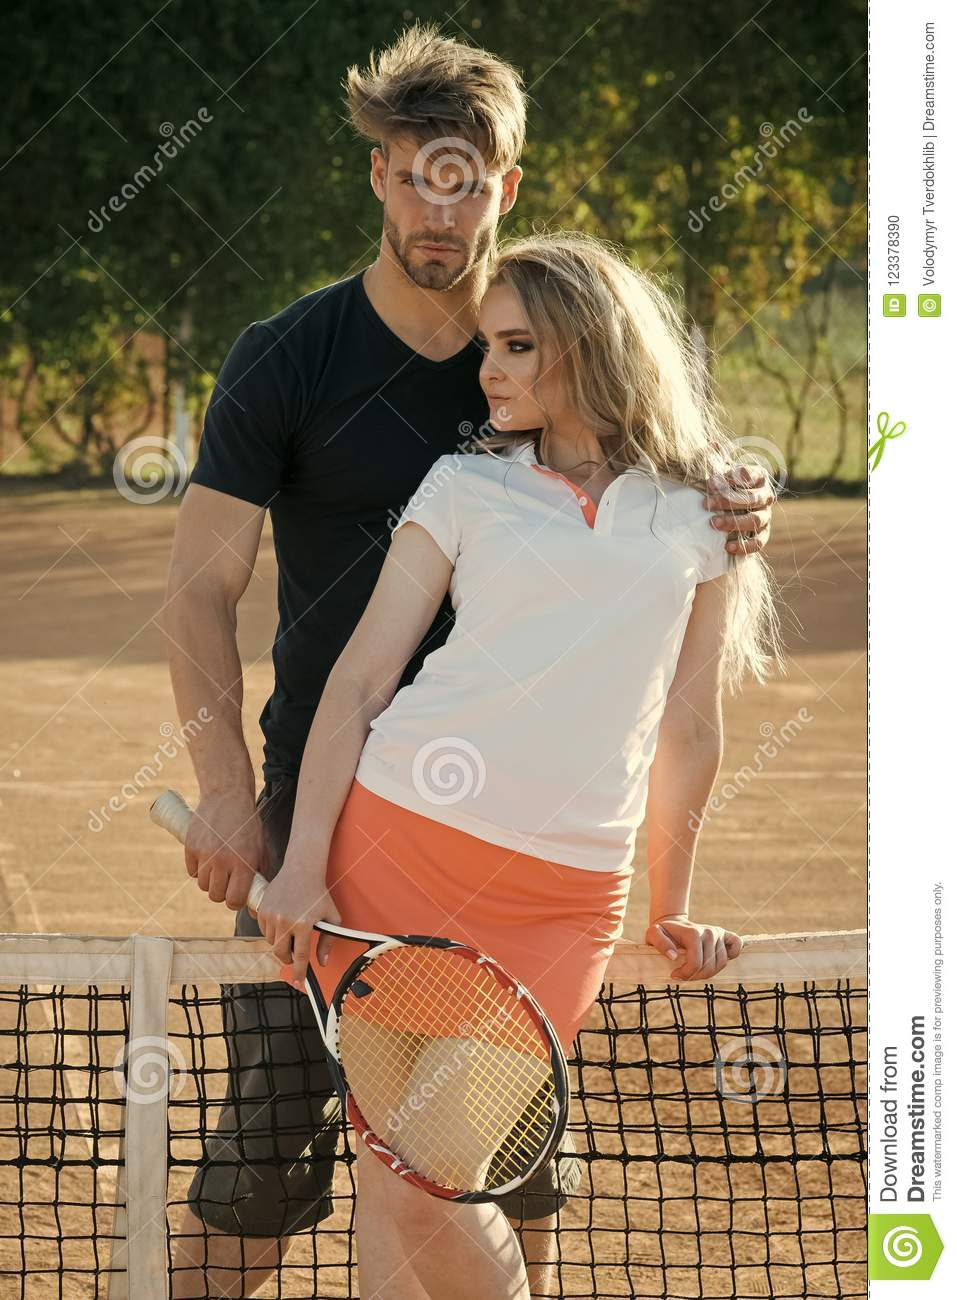 Woman And Man Athletes Hold Tennis Racket Stock Photo - Image of concept,  racket: 123378390